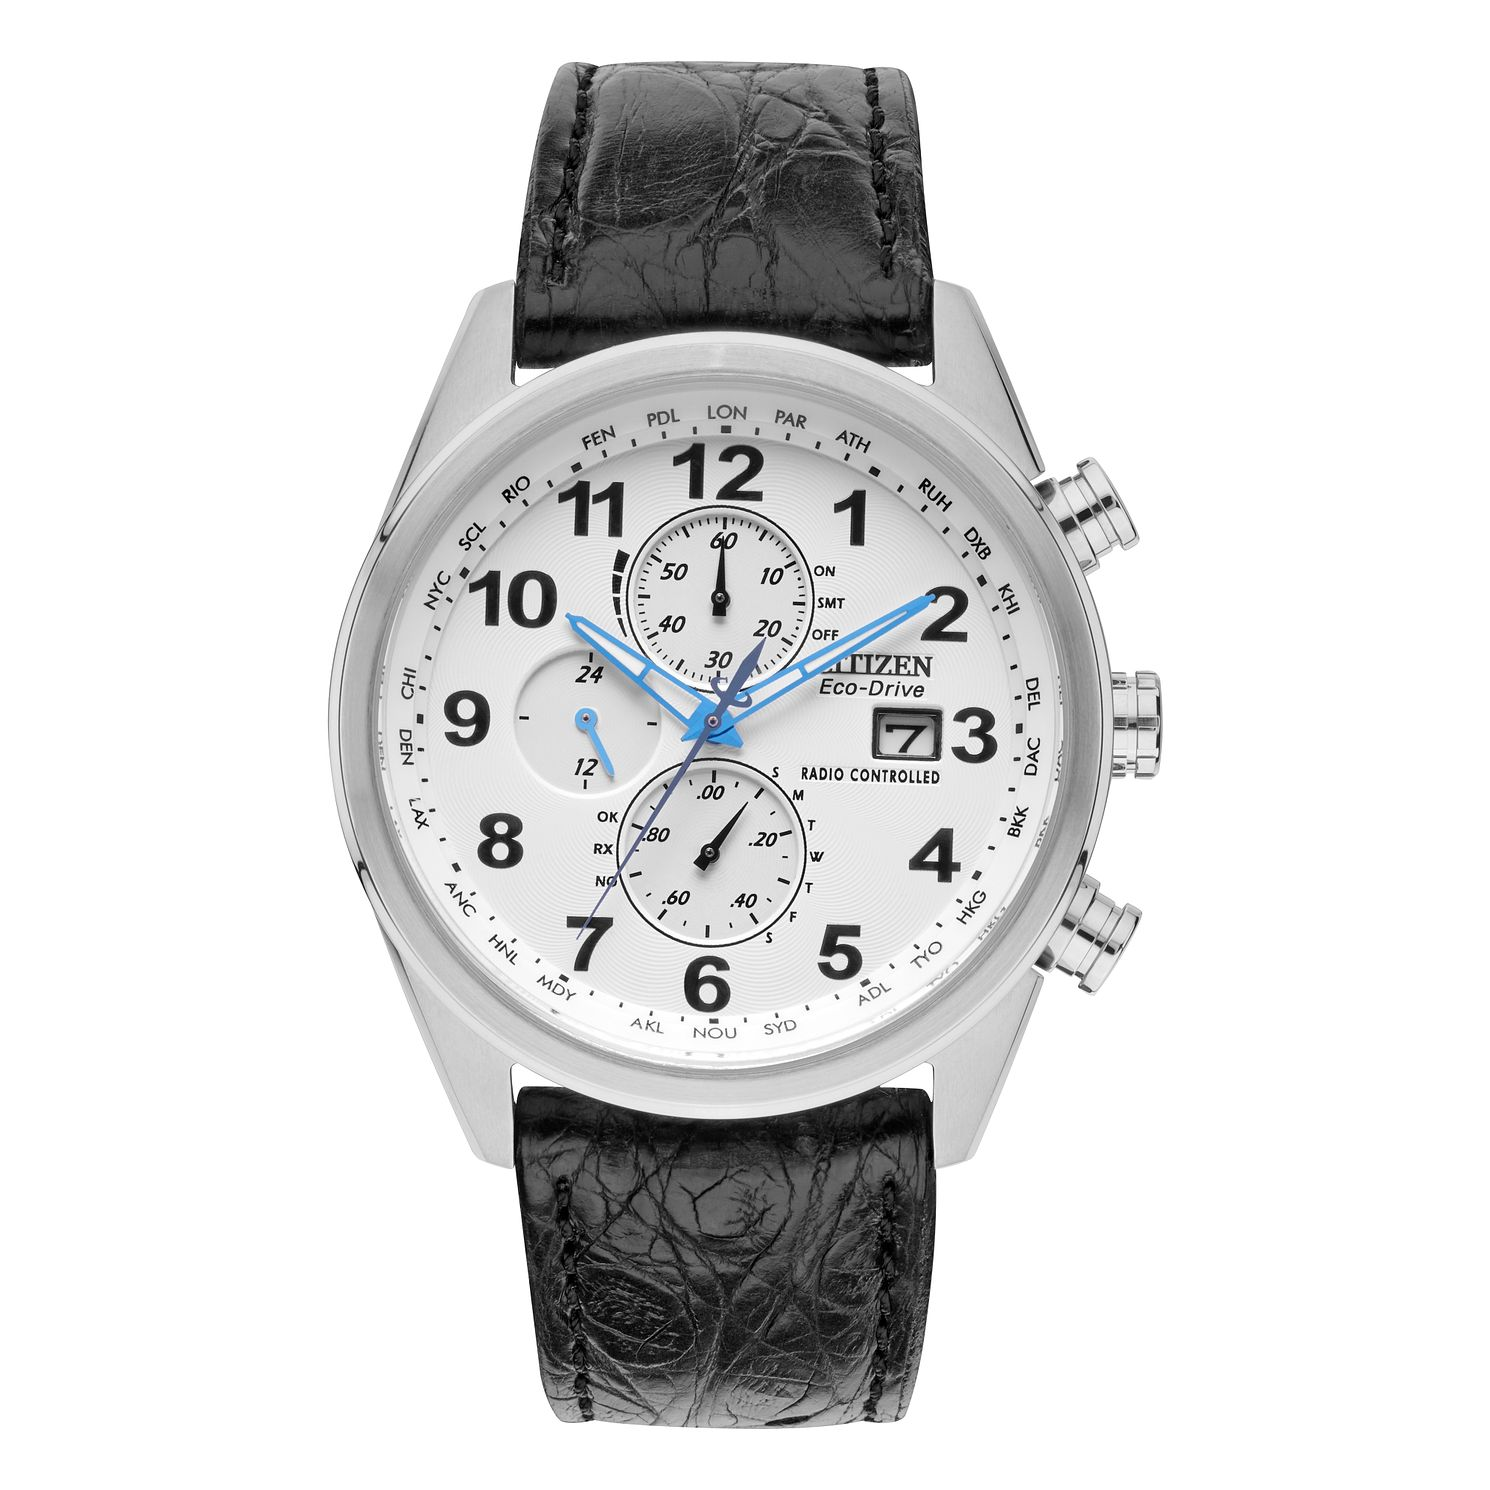 Citizen Eco Drive Men S Black Leather Strap Watch At8038 08a